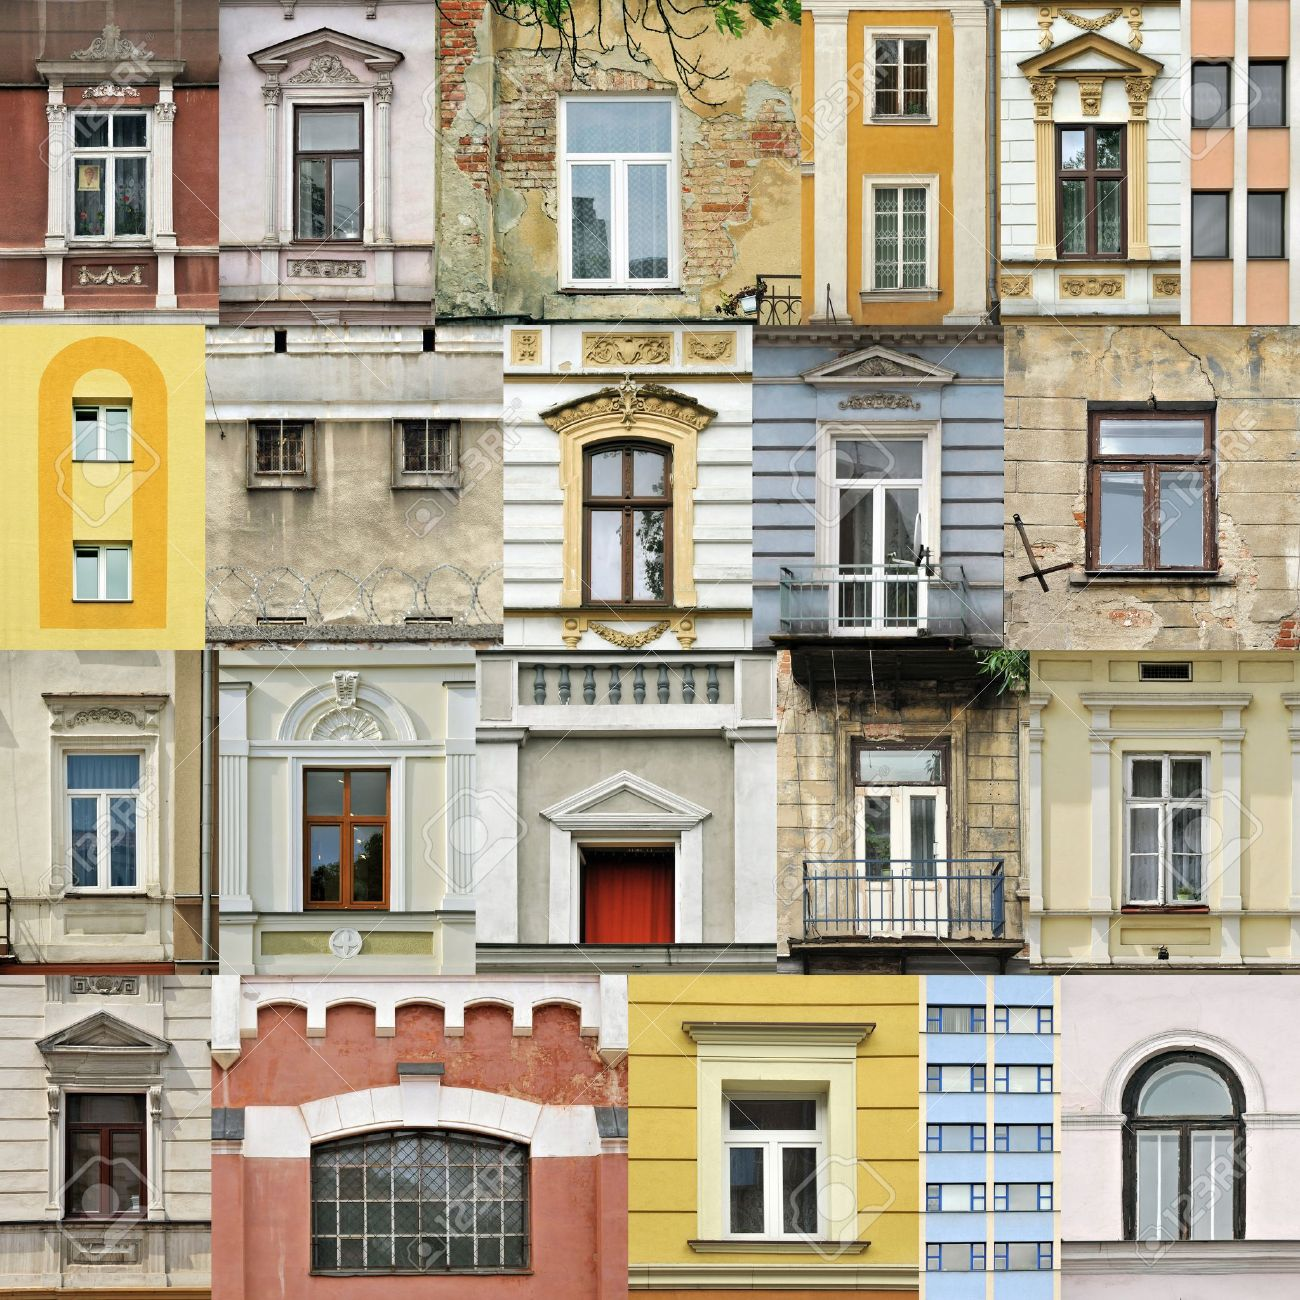 House window frame - Window Frame Assembling Of Different Windows In Different Architectral Styles Stock Photo